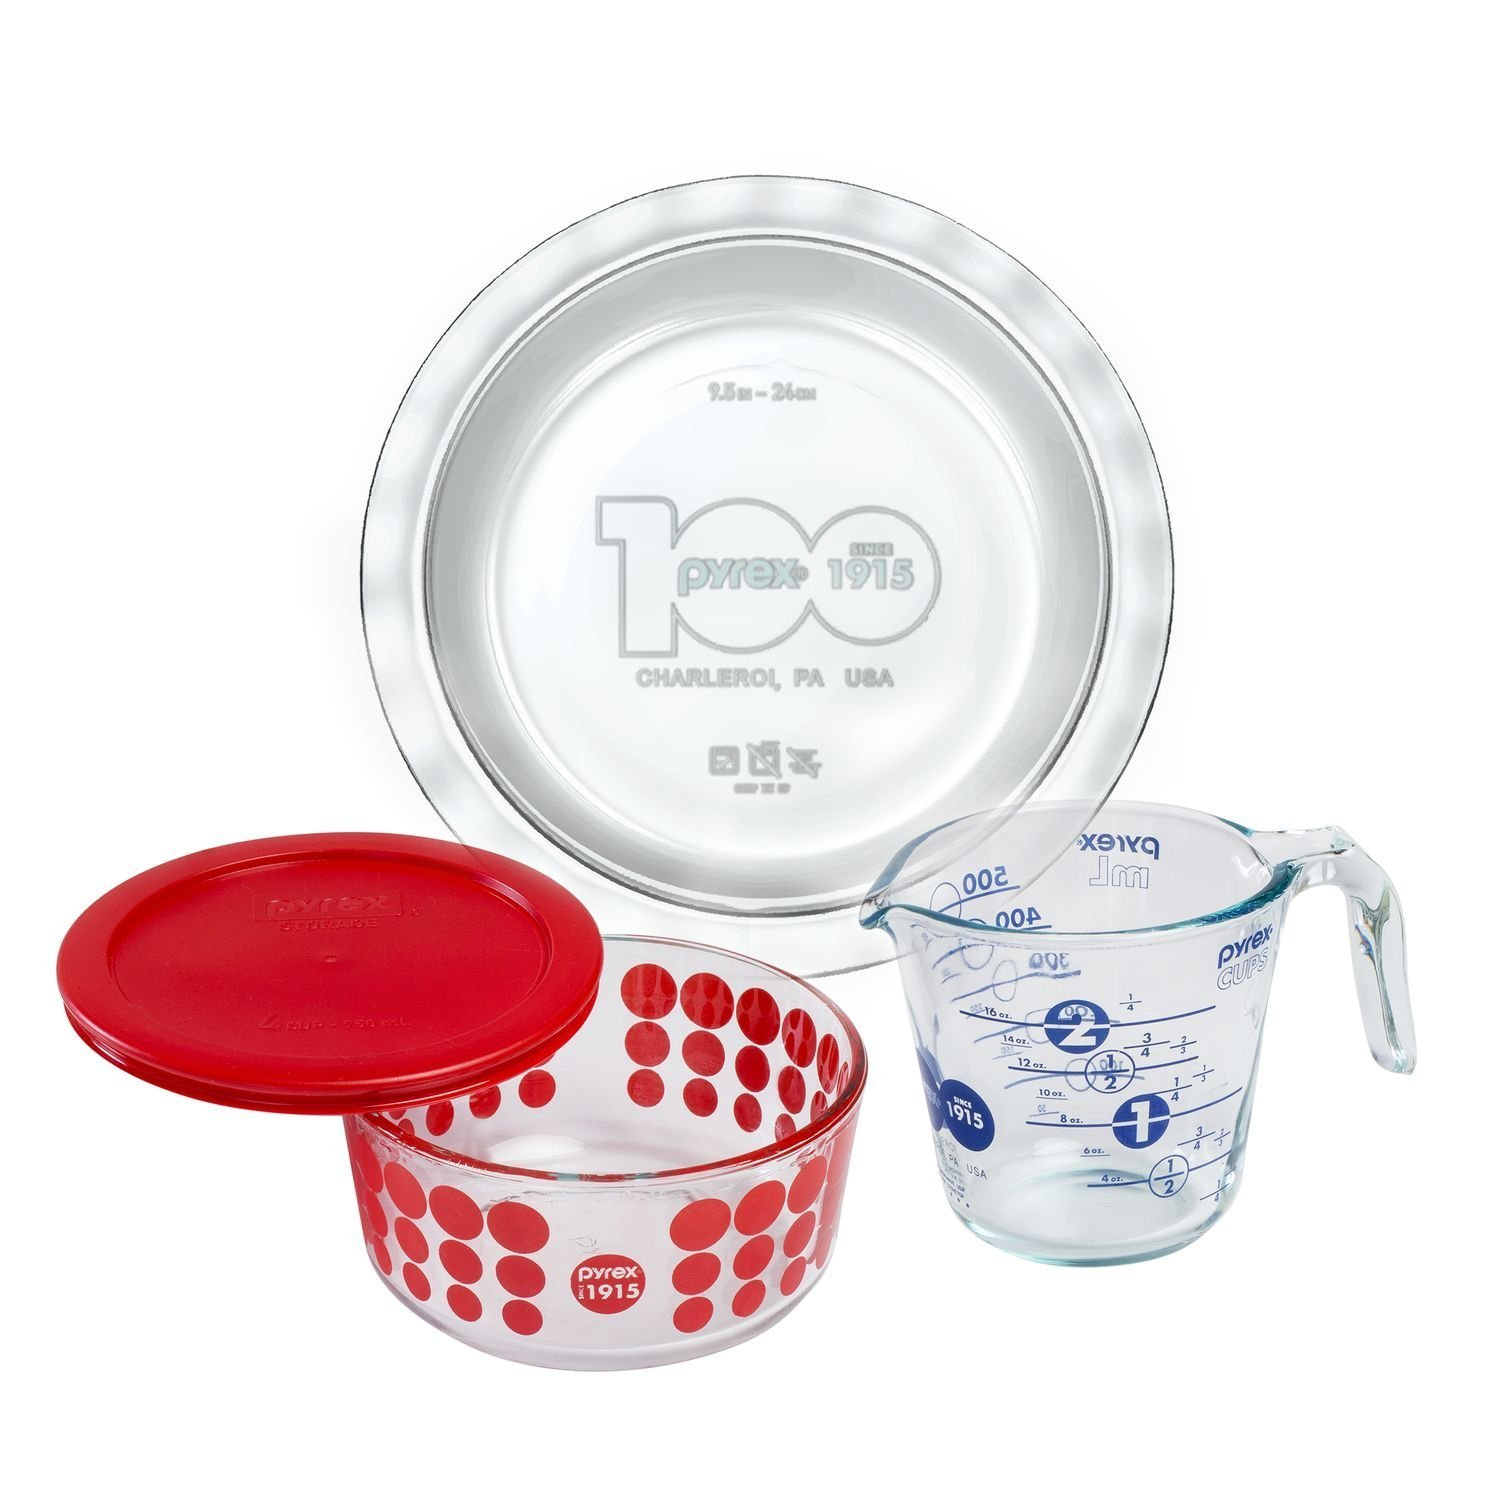 Pyrex 100 100th Anniversary 4 Piece Centennial Collector Set by Pyrex World Kitchen 1121143